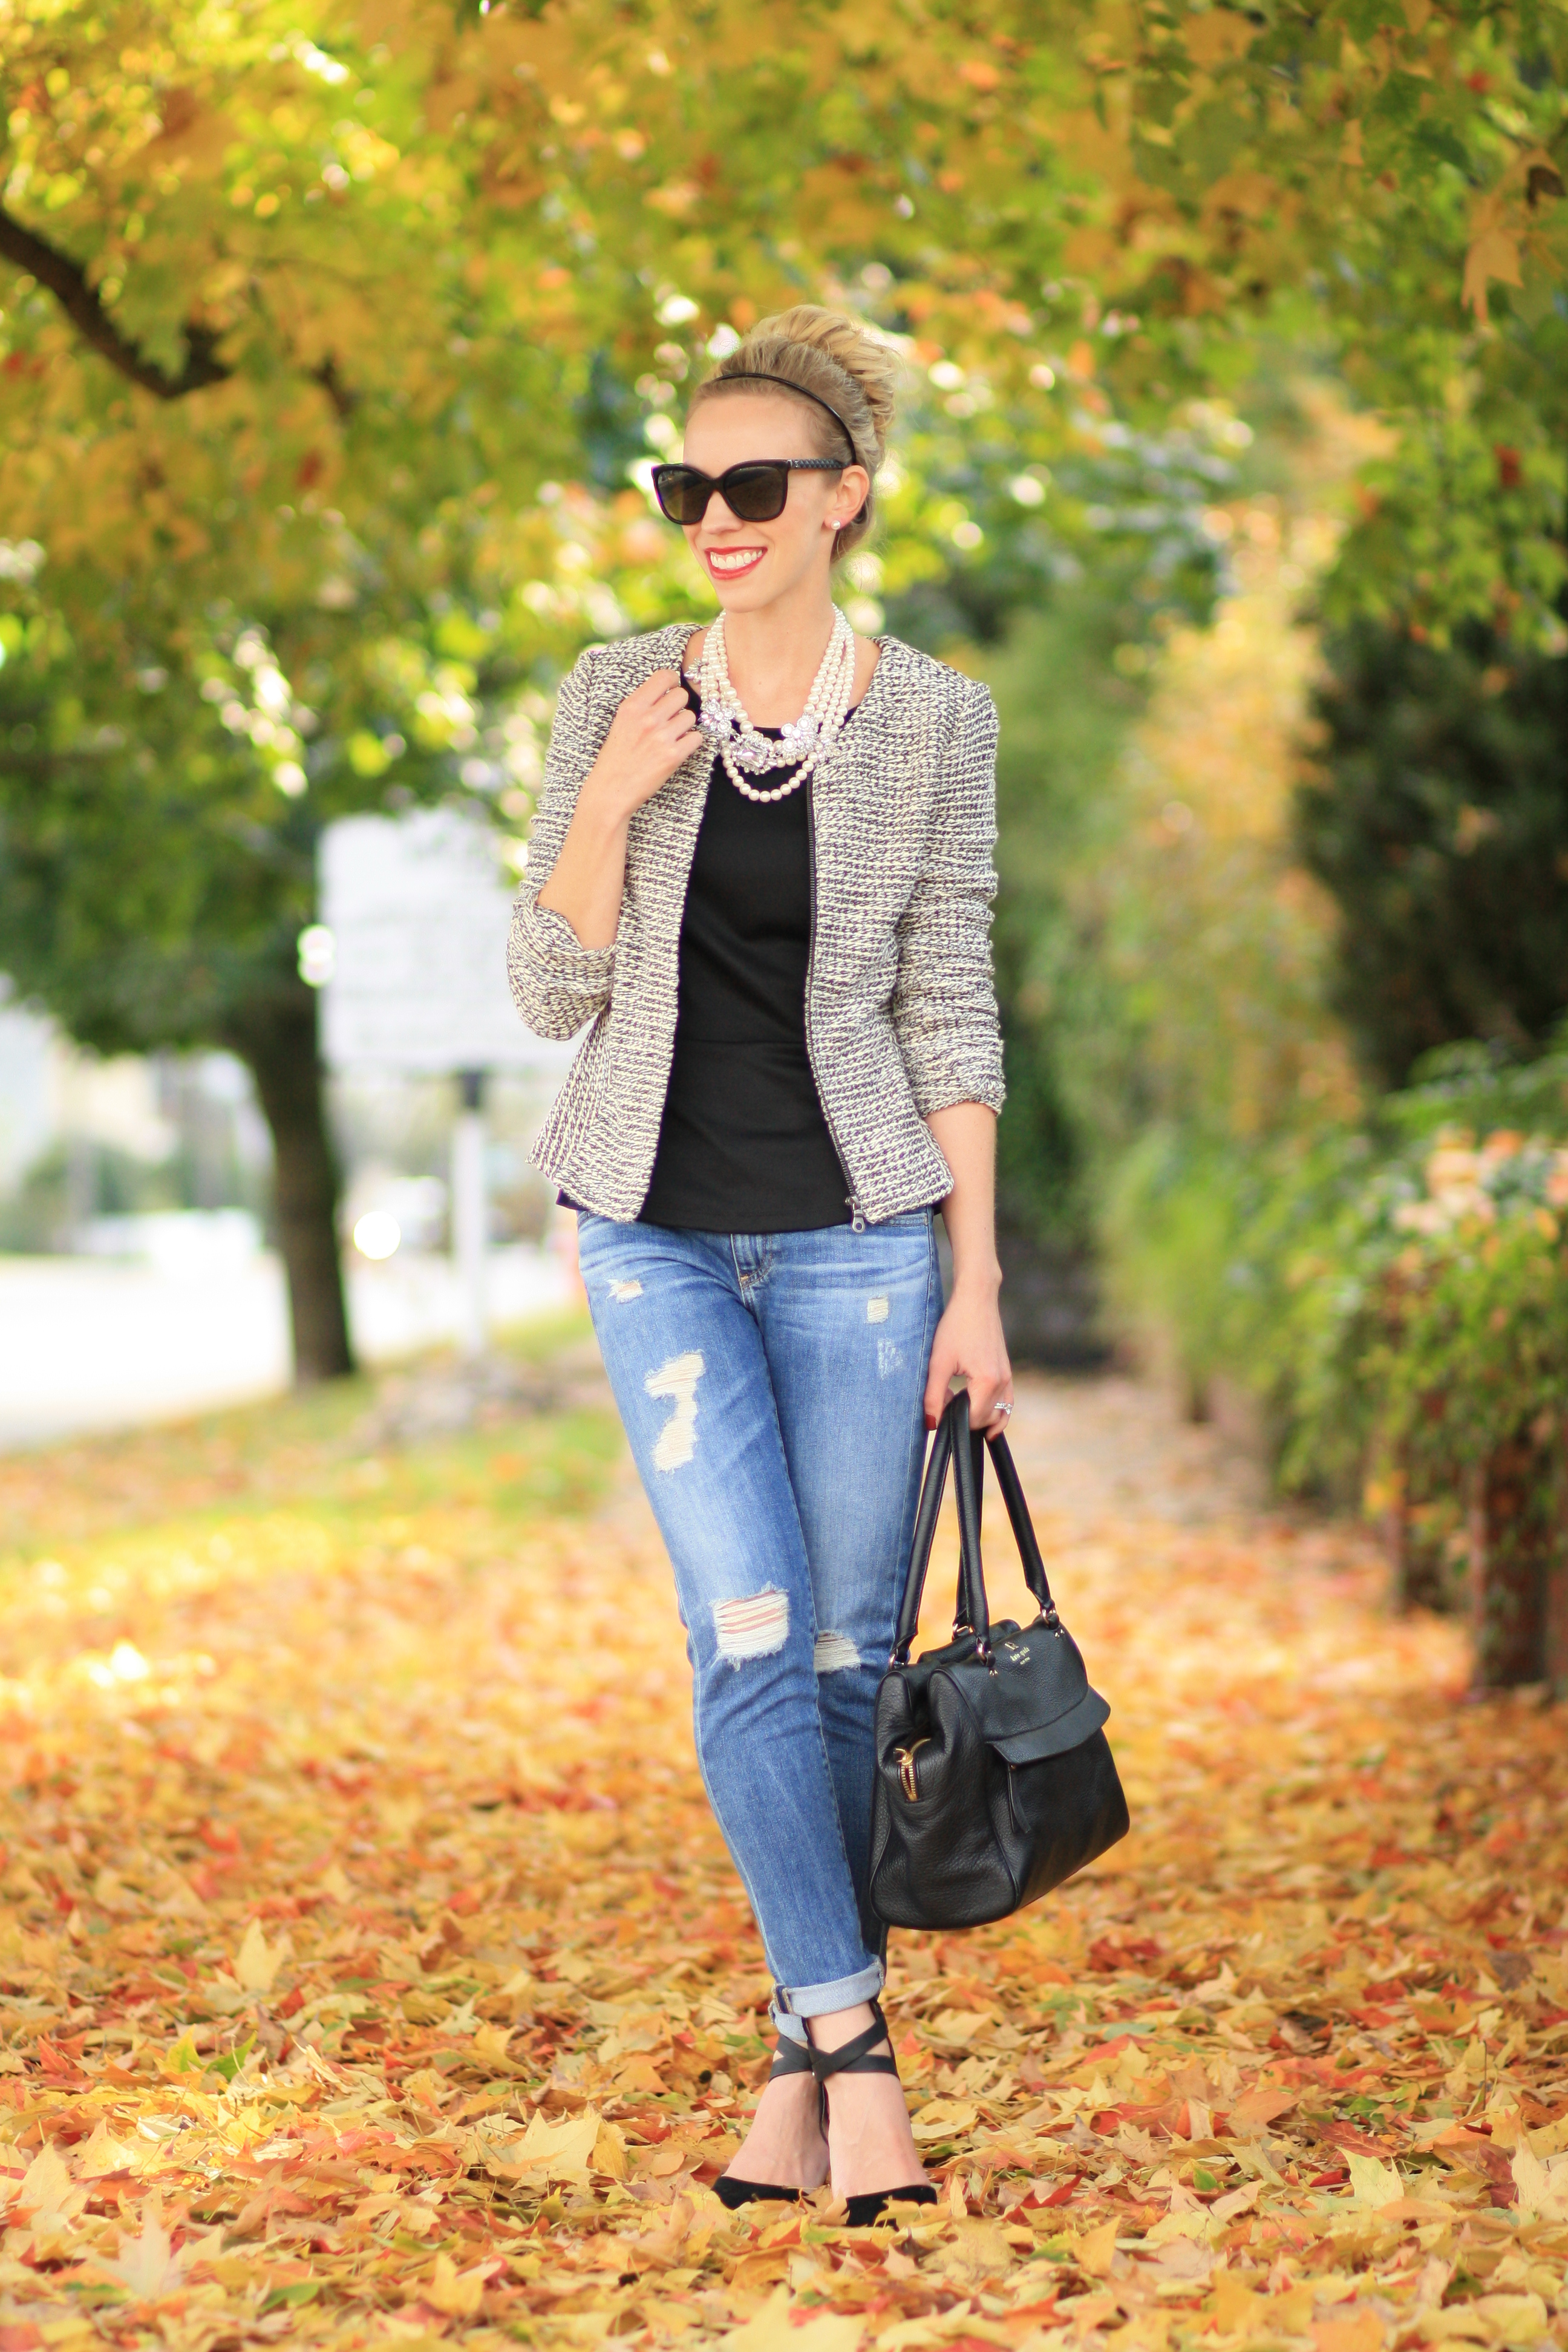 b76e7c144c8e00 black and white tweed peplum jacket, pearl statement necklace, layered  pearl necklace with tweed ...